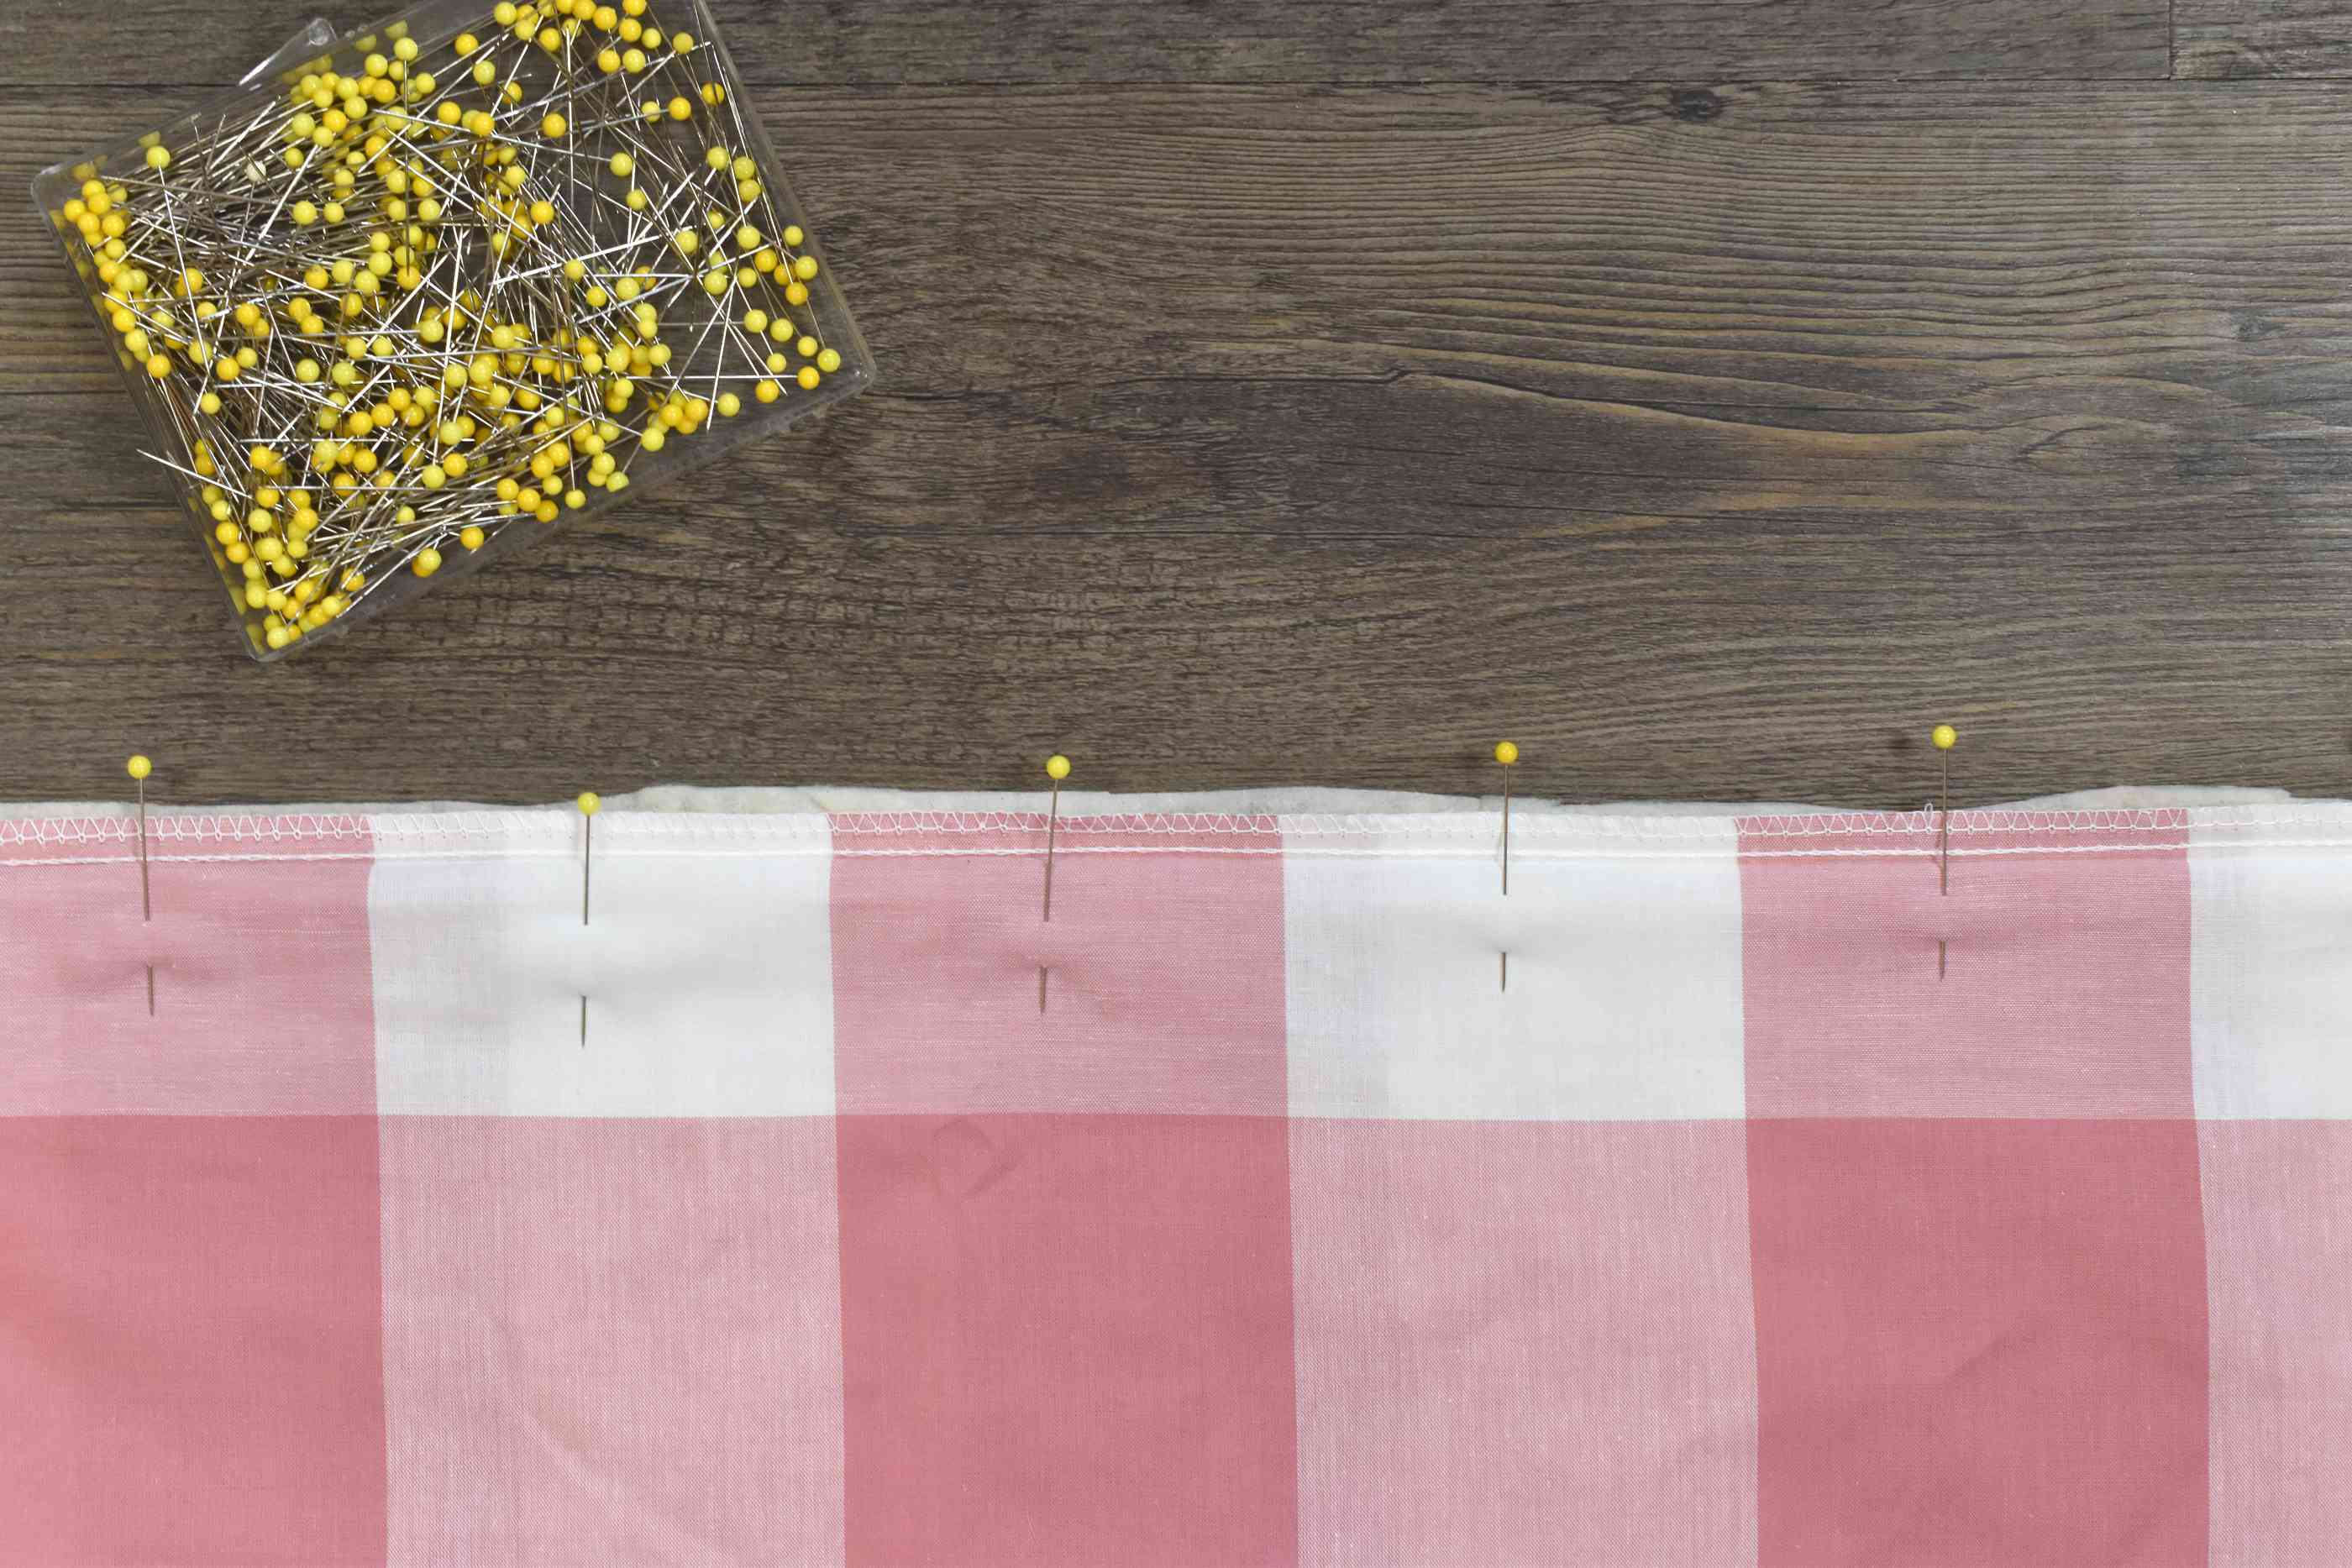 Pin and Sew the Fabric and Batting Layers